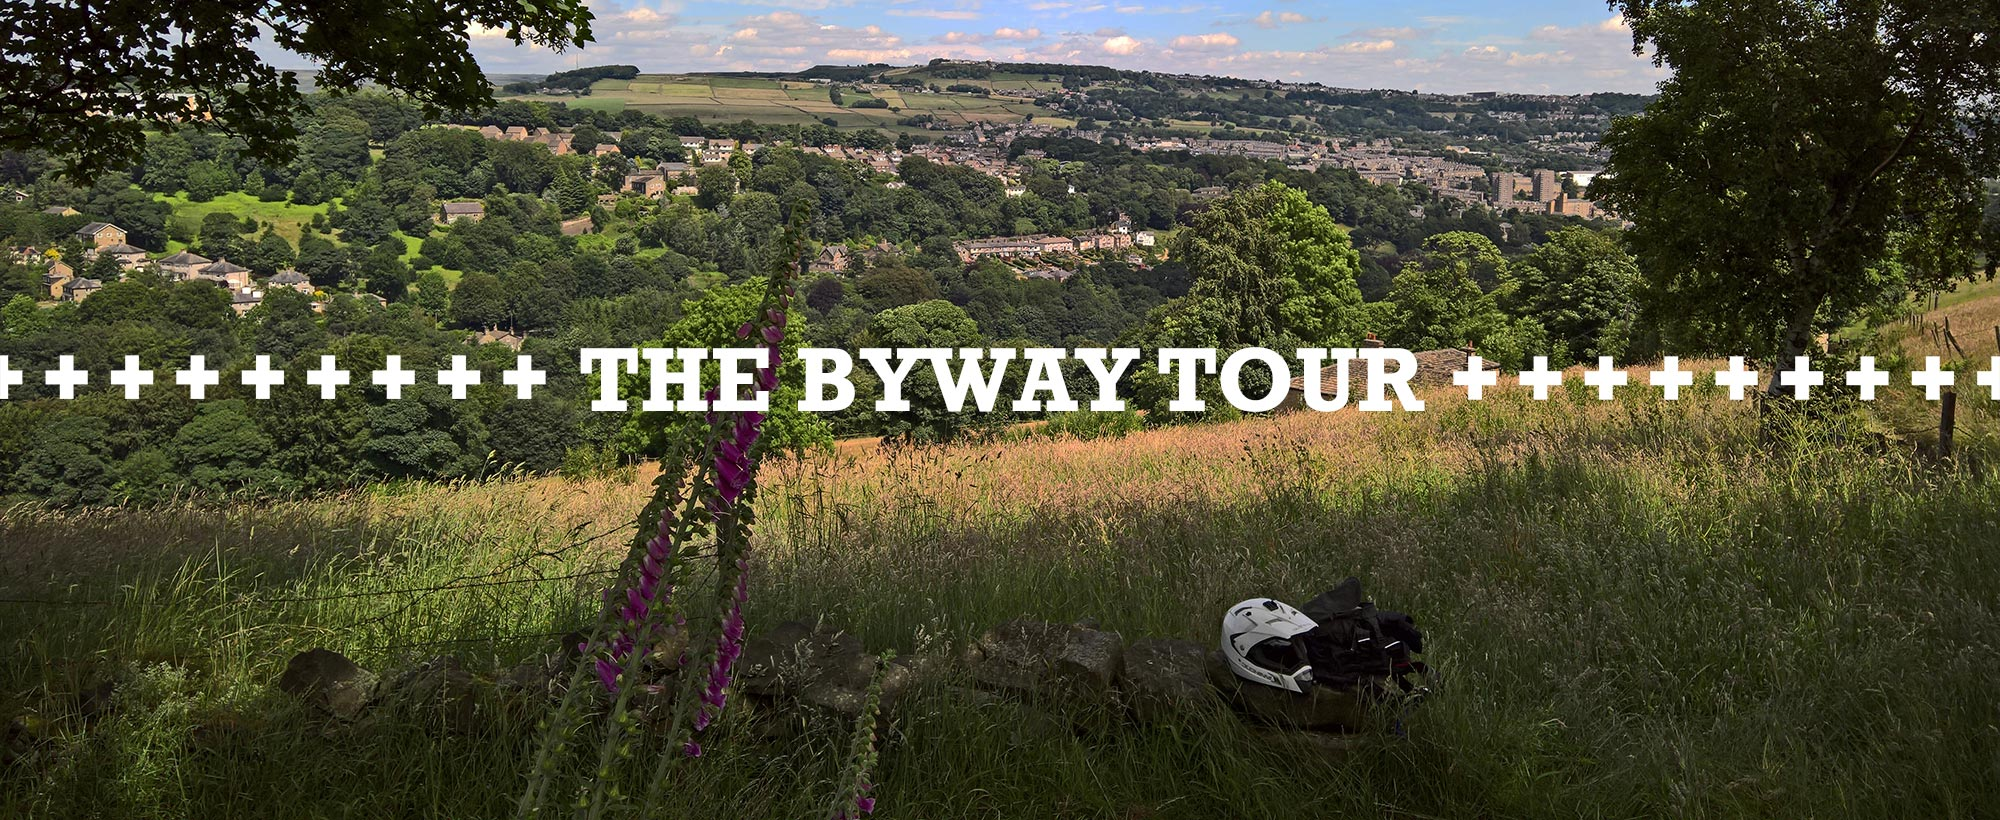 the-byway-tour-title-01